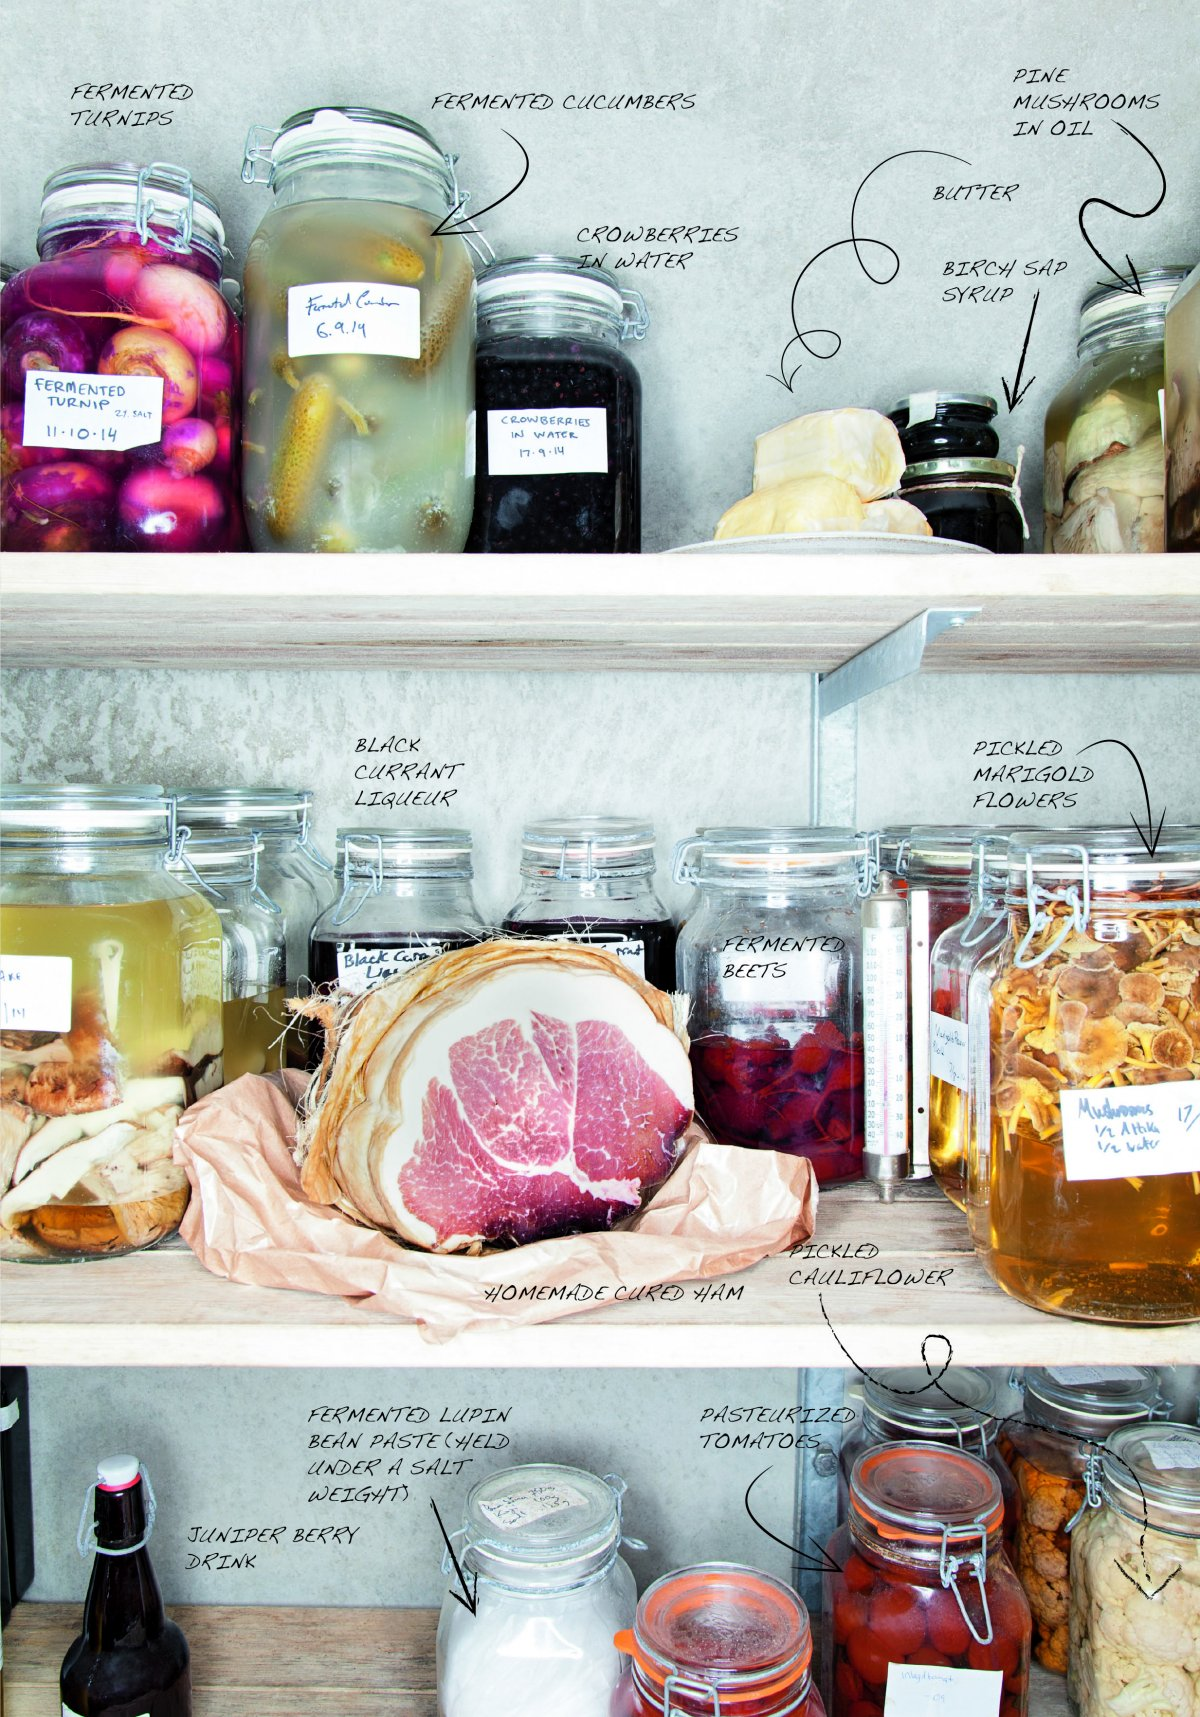 magnus nilsson is the head chef at fviken located in the far northwest of sweden on the largest privately owned estate in the country his fridge is full of fermented vegetables including turnips and cucumbers you can also help yourself to h